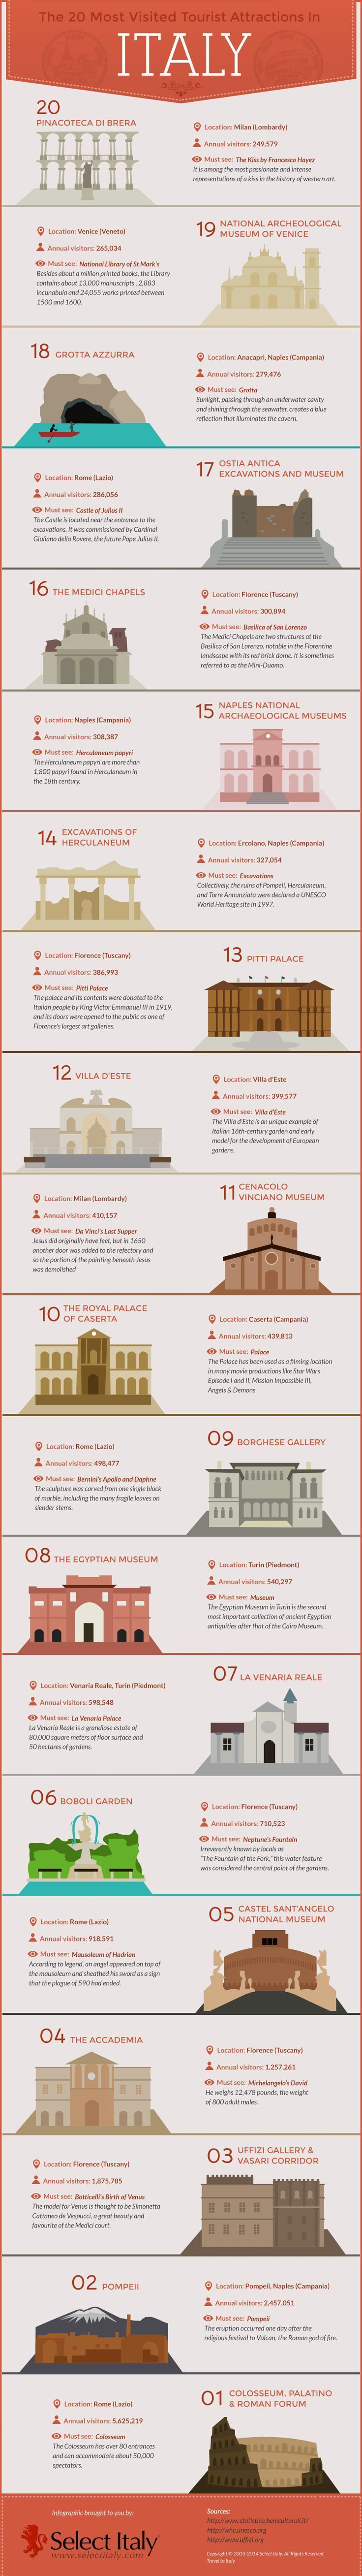 The Most Visited Tourist Attractions In Italy INFOGRAPHIC - 10 important phrases to learn for your trip to rome